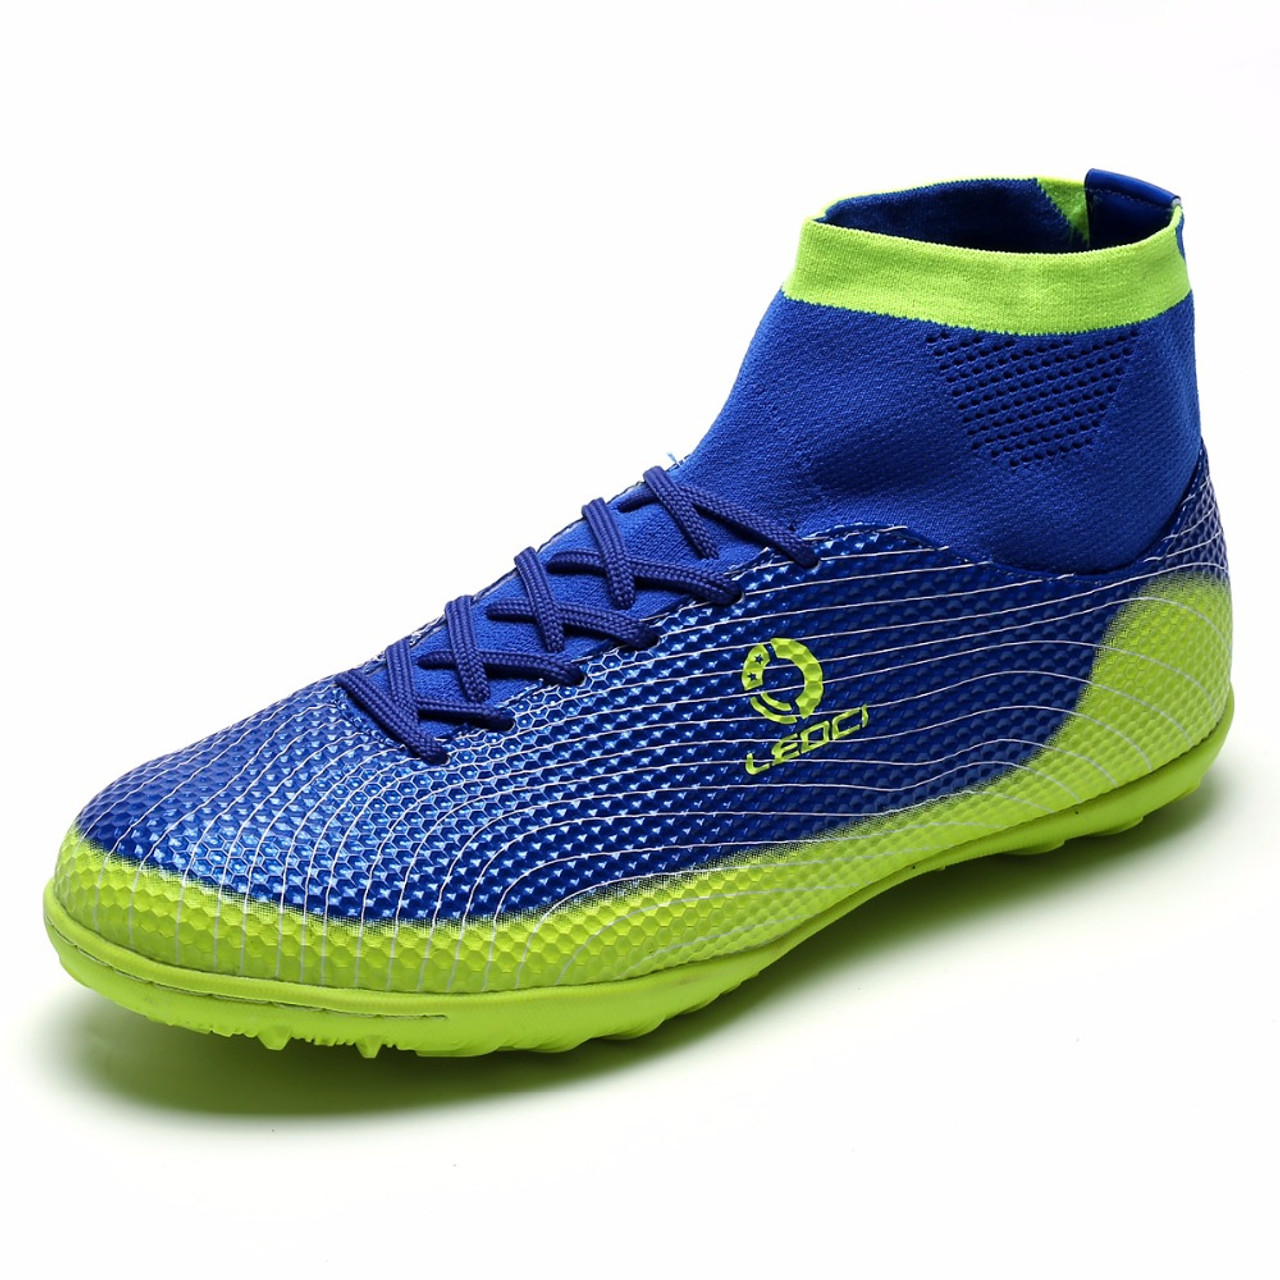 7b1869e19b88 ... Leoci Men TF Soccer Shoes High Ankle Football Boots Plus Size Soccer  Cleat Boots Kids Boys ...